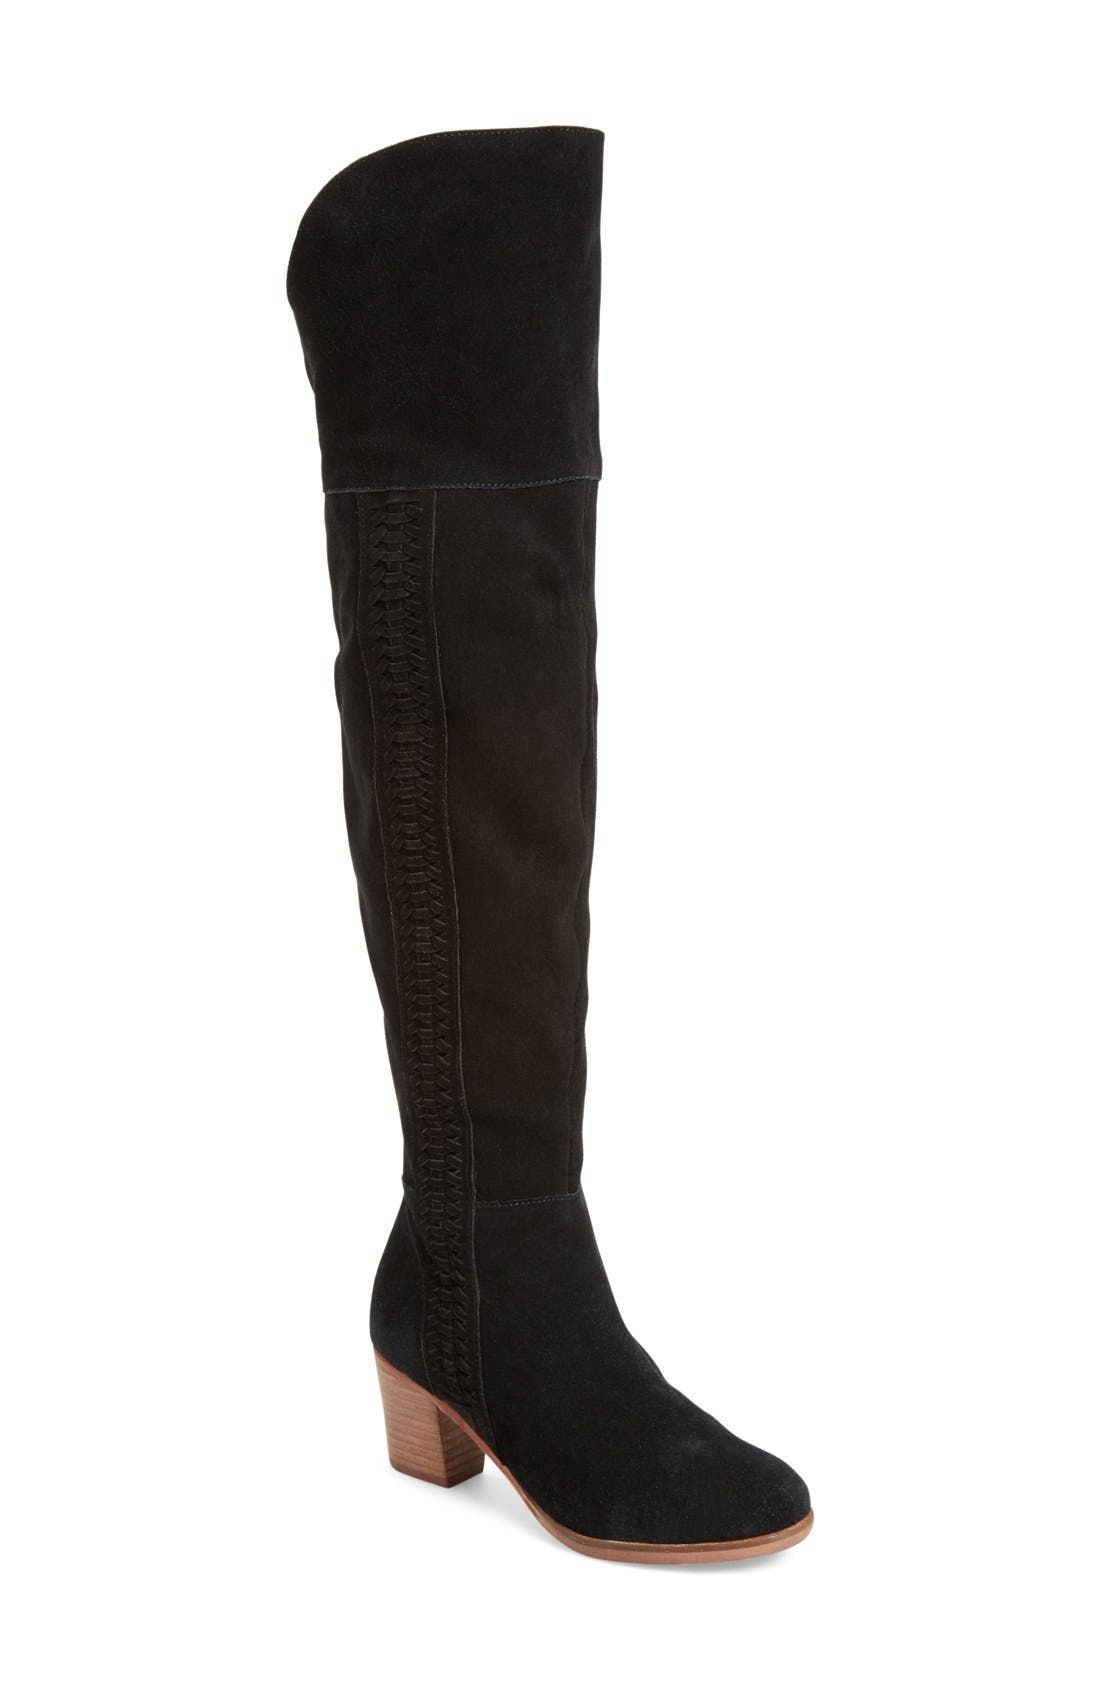 Alternate Image 1 Selected - Matisse Muse Tall Boot (Women) (Narrow Calf)